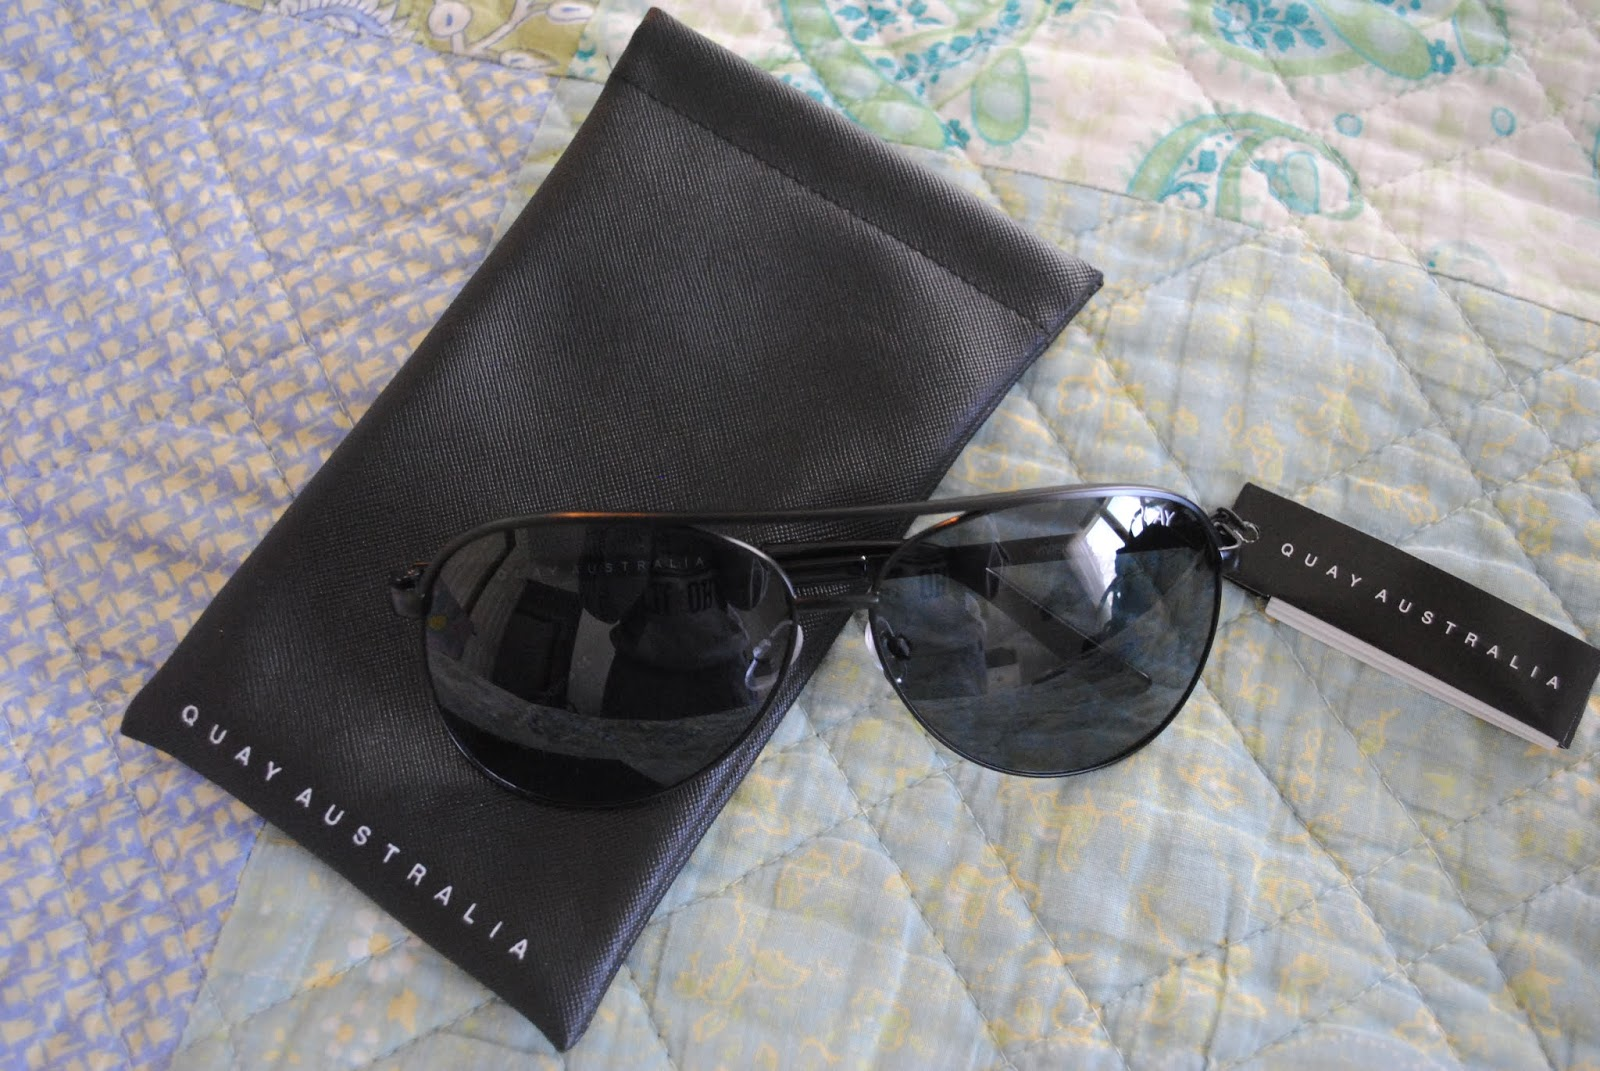 ecaad74f95 The last thing I got in my box was the Quay Australia Vivienne sunglasses  in the color black smoke. This was also a choice item.